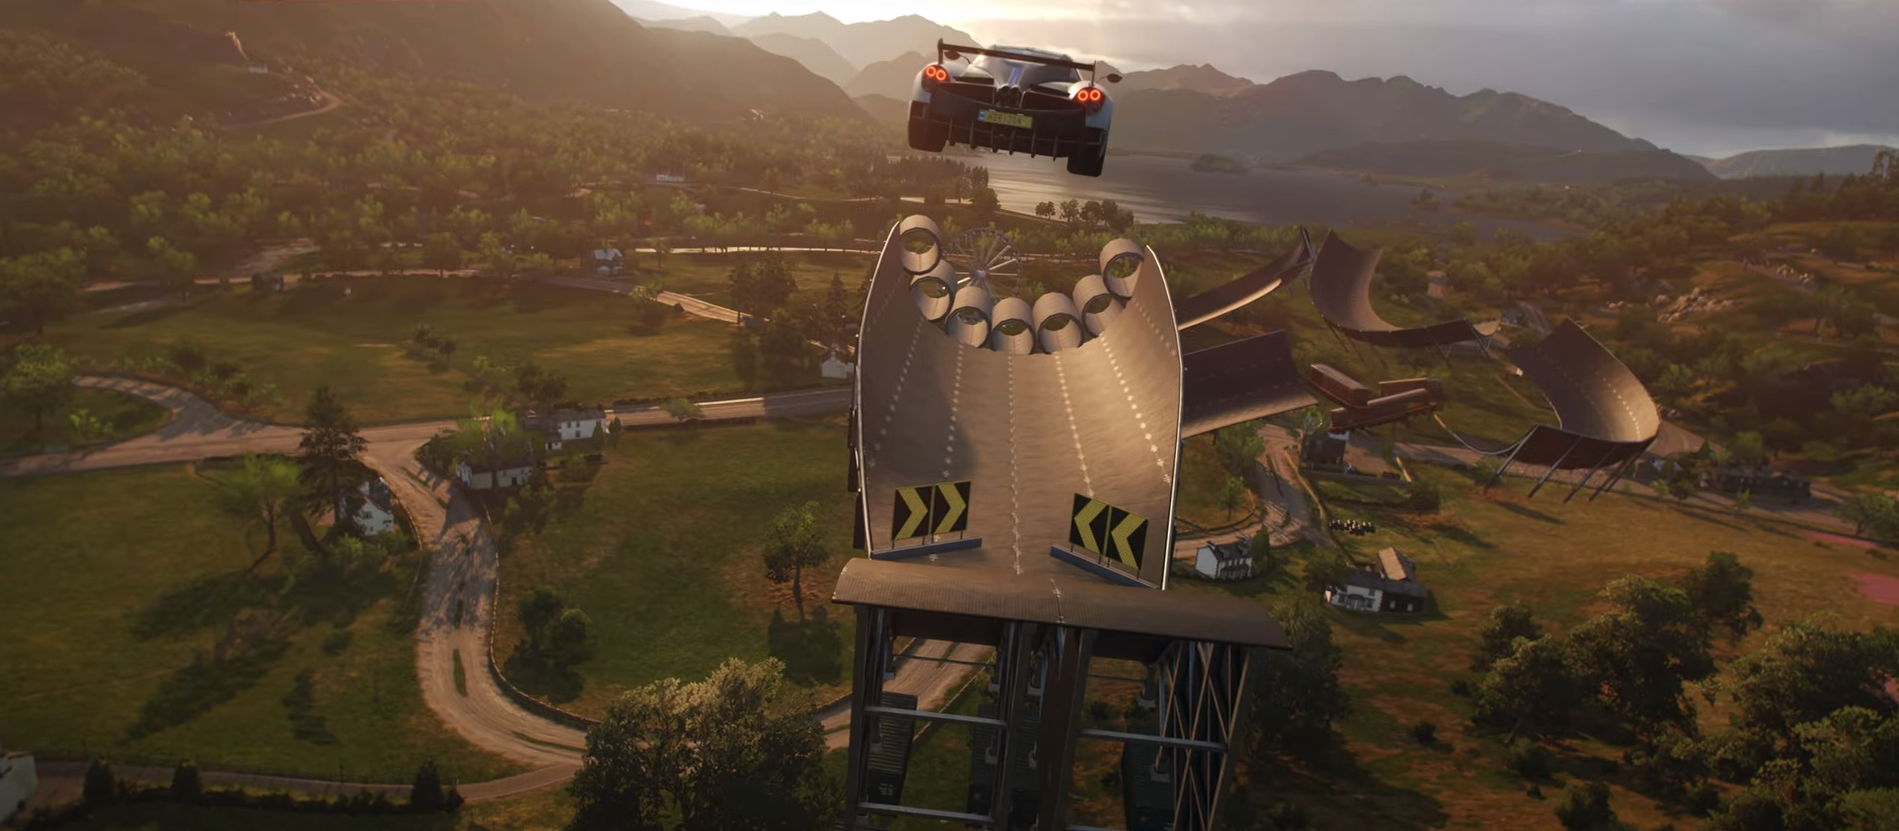 Forza Horizon 4 gets a new stunt-based game mode called Super7